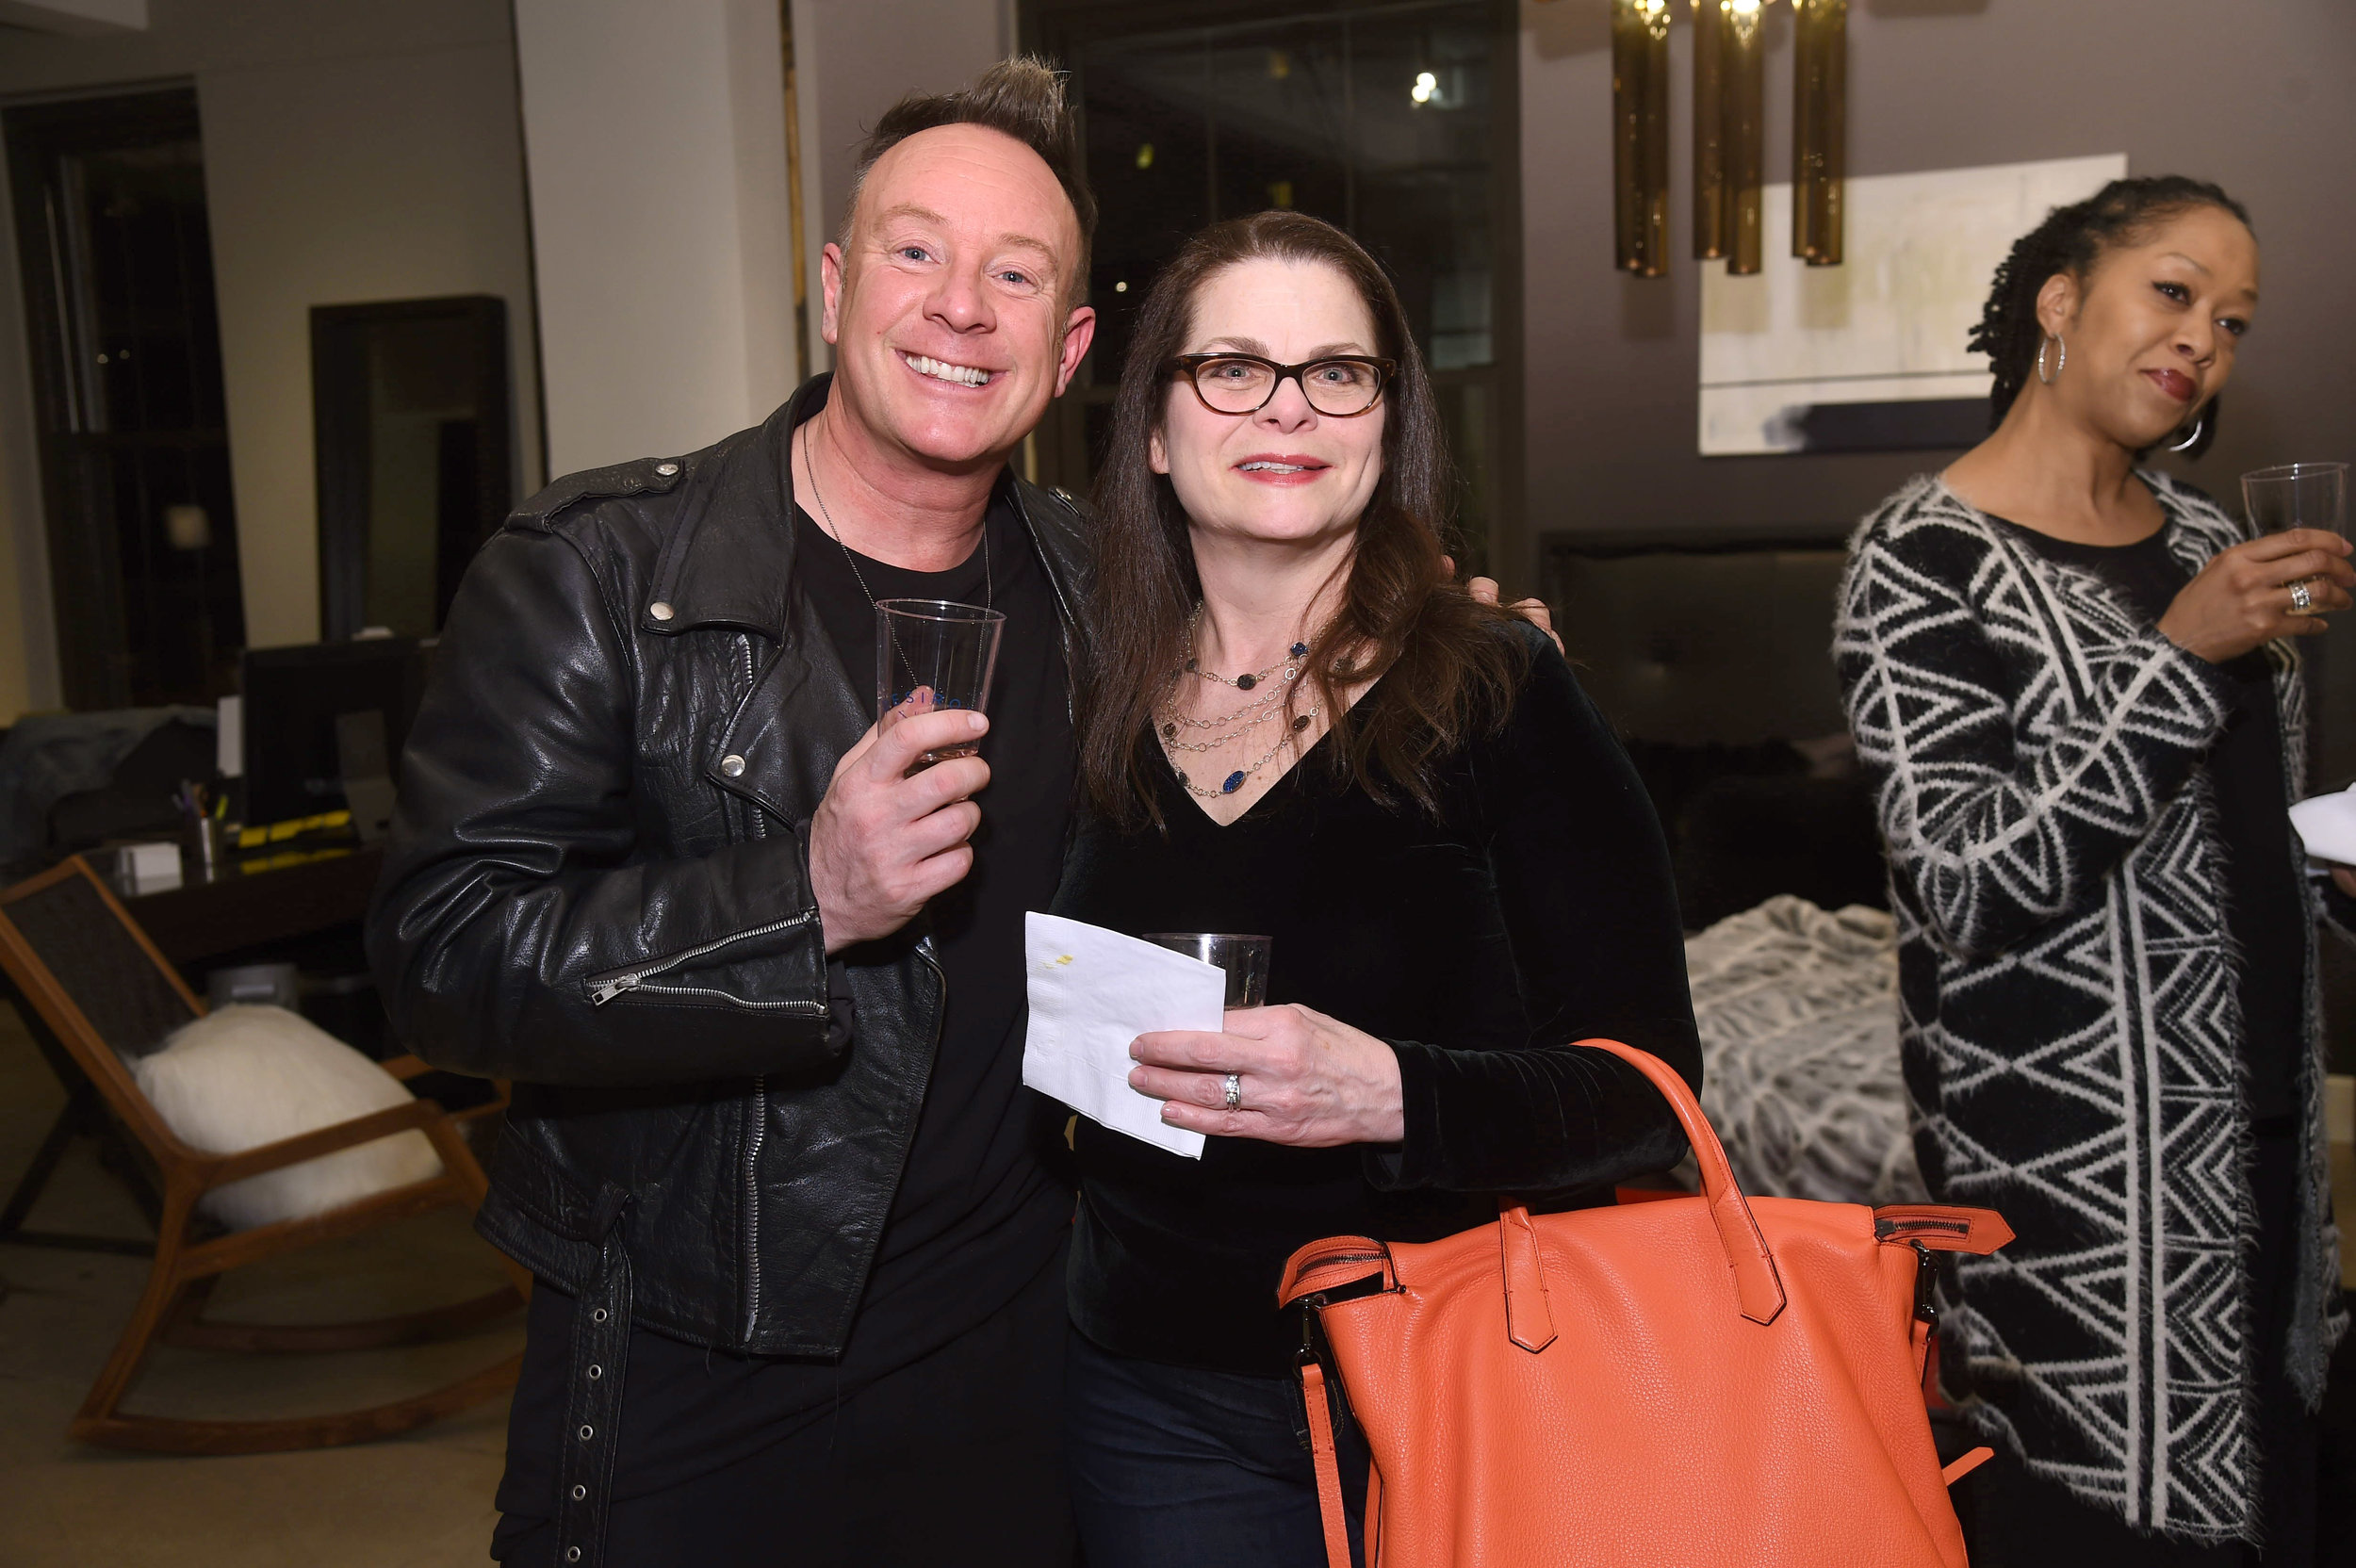 design-on-a-dime-nyc-2017-kick-off-party_33362714645_o.jpg